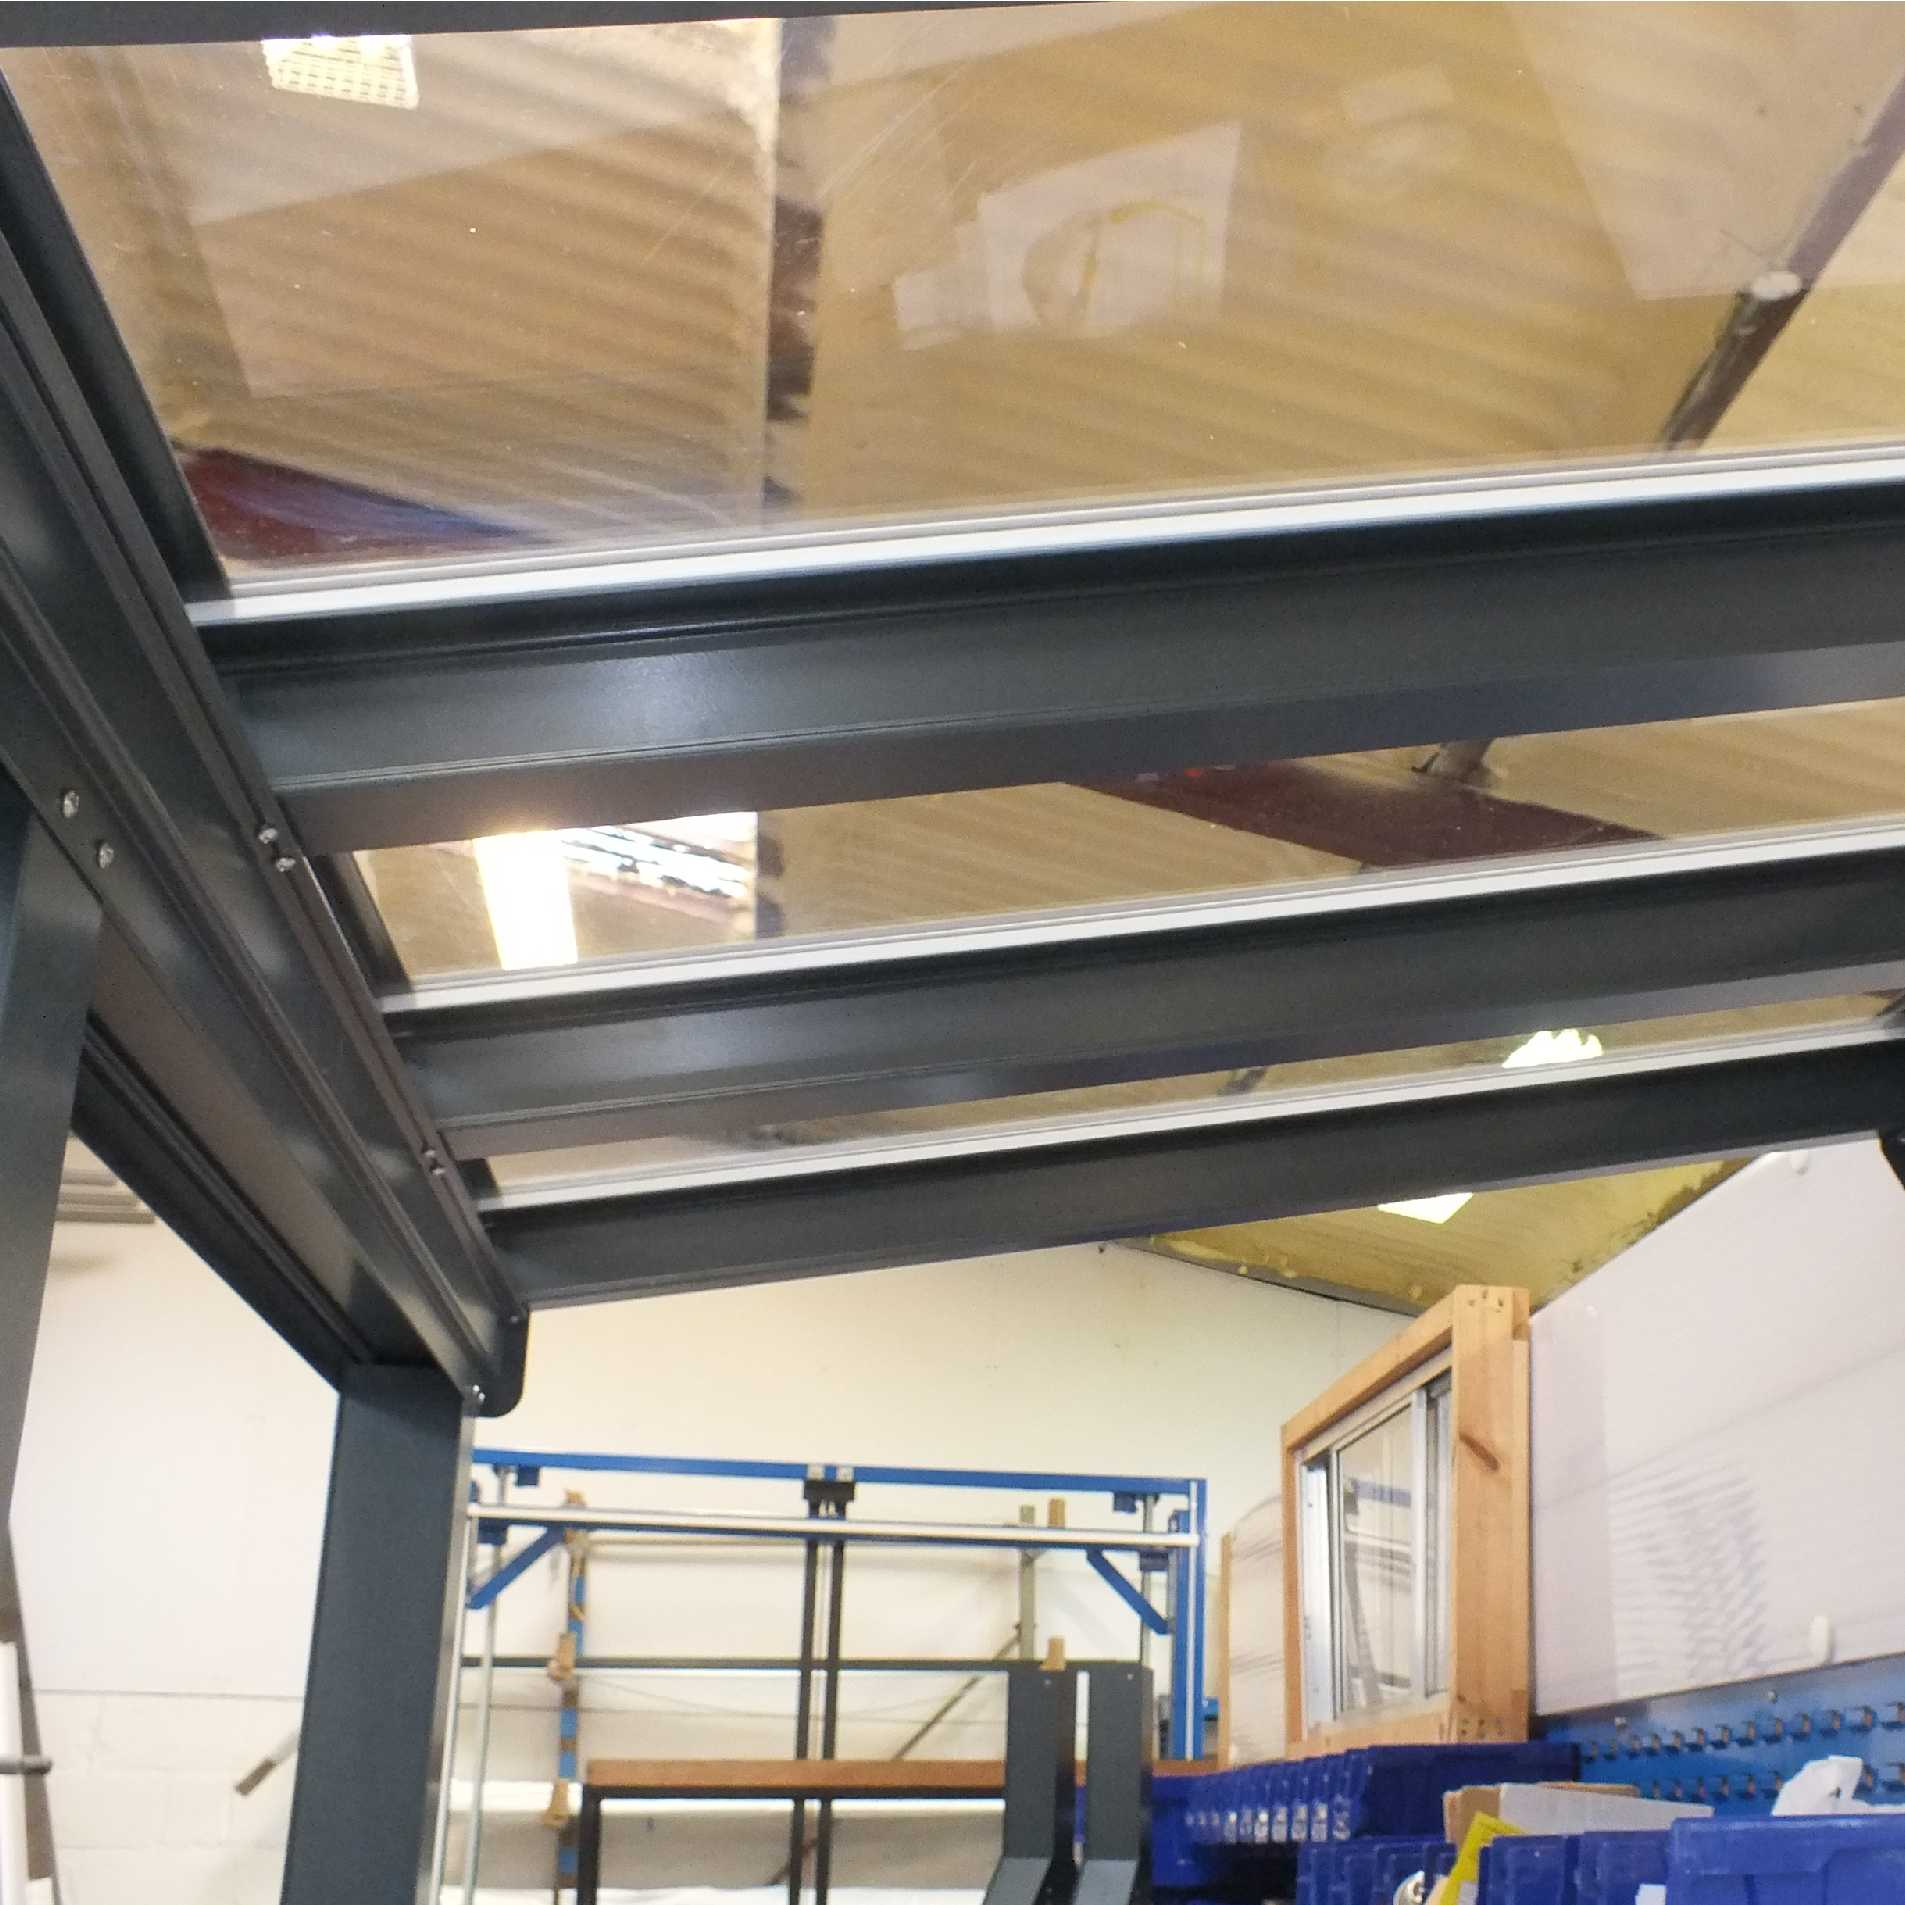 Great deals on Omega Smart Lean-To Canopy, Anthracite Grey, 6mm Glass Clear Plate Polycarbonate Glazing - 6.3m (W) x 2.5m (P), (4) Supporting Posts